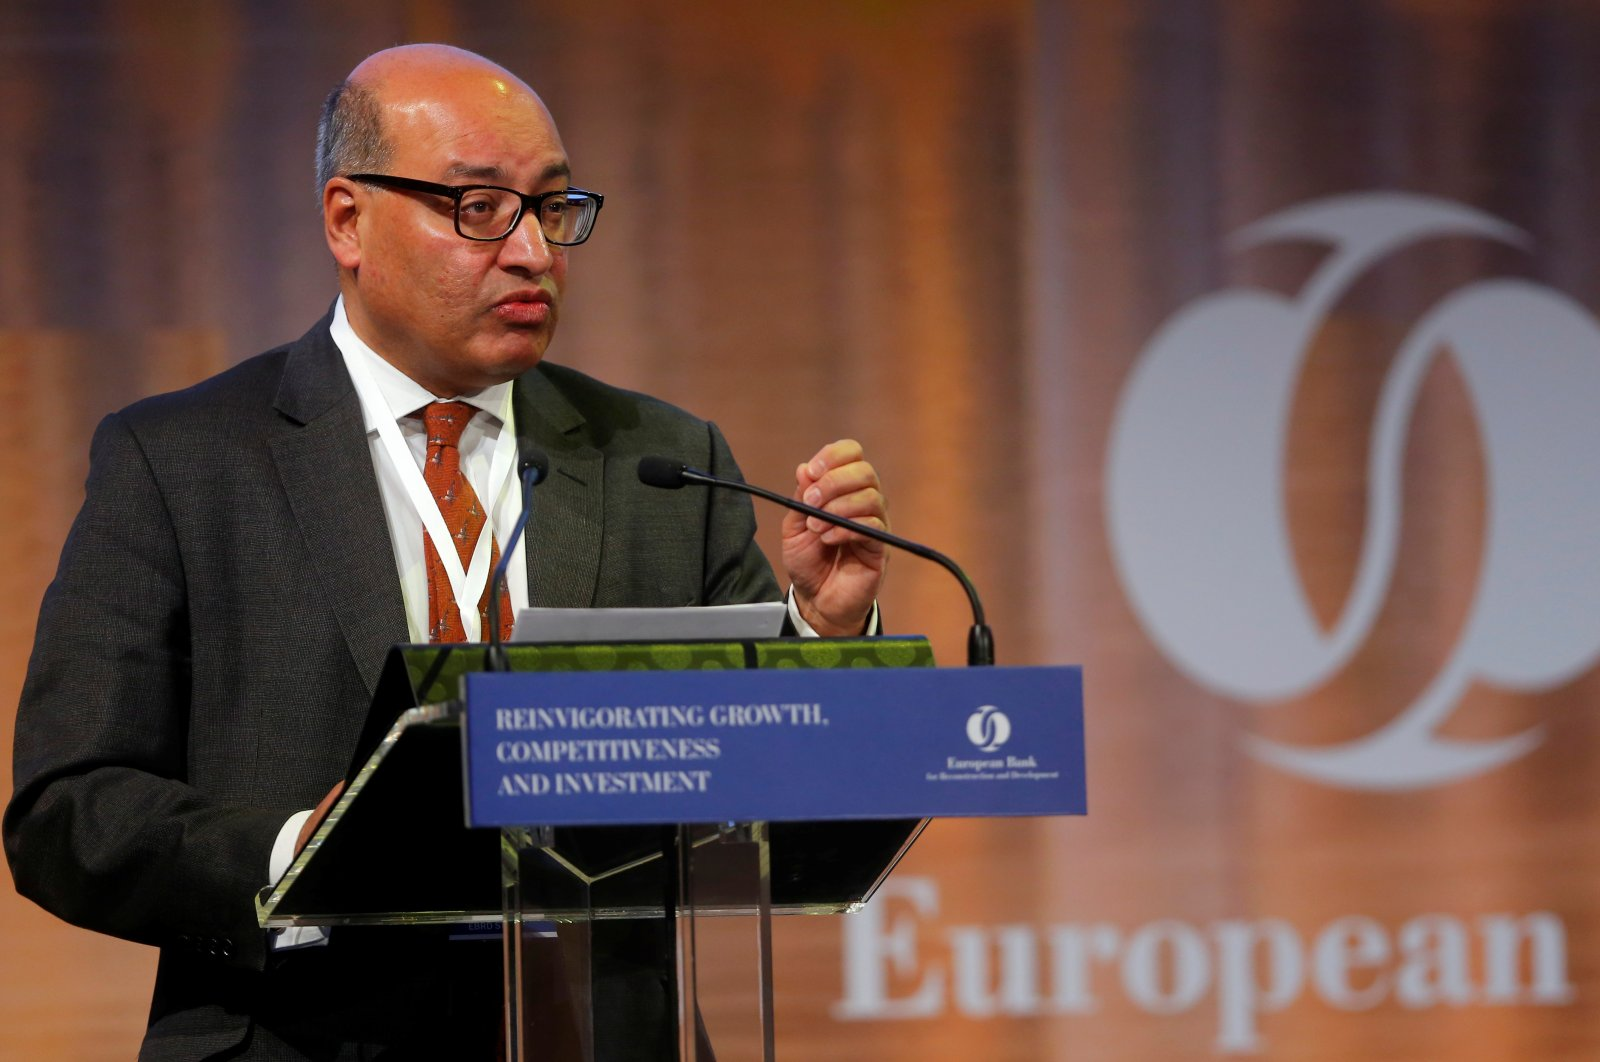 Suma Chakrabarti, president of the European Bank for Reconstruction and Development (EBRD), delivers a speech during their economic conference in Budapest, Hungary, Nov. 10, 2016. (Reuters Photo)